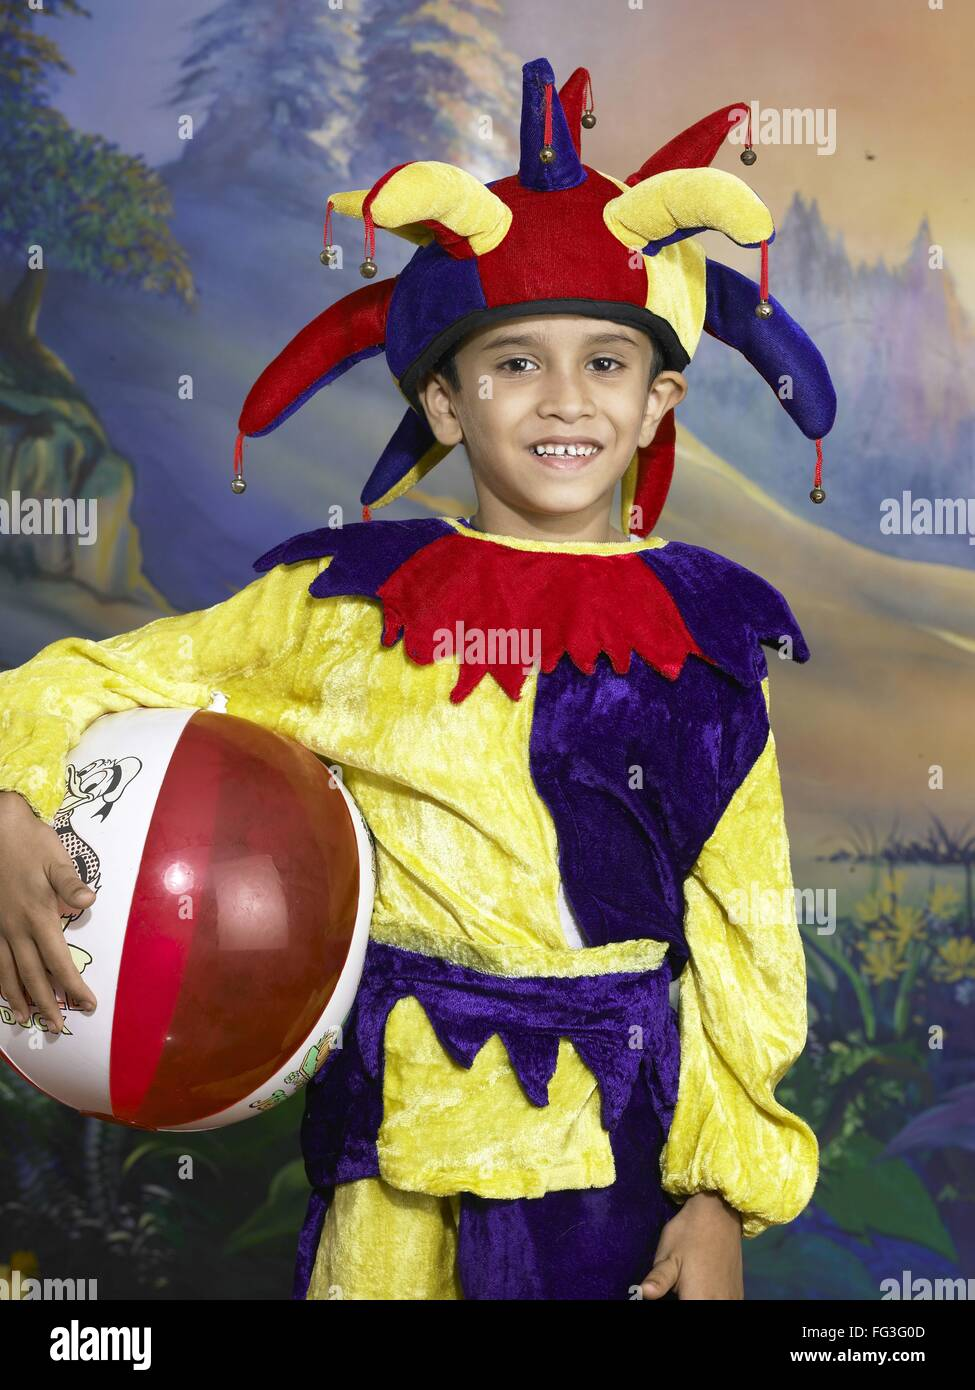 1a8a5abef South Asian Indian boy dressed as joker holding ball performing fancy dress  competition on stage in nursery school MR